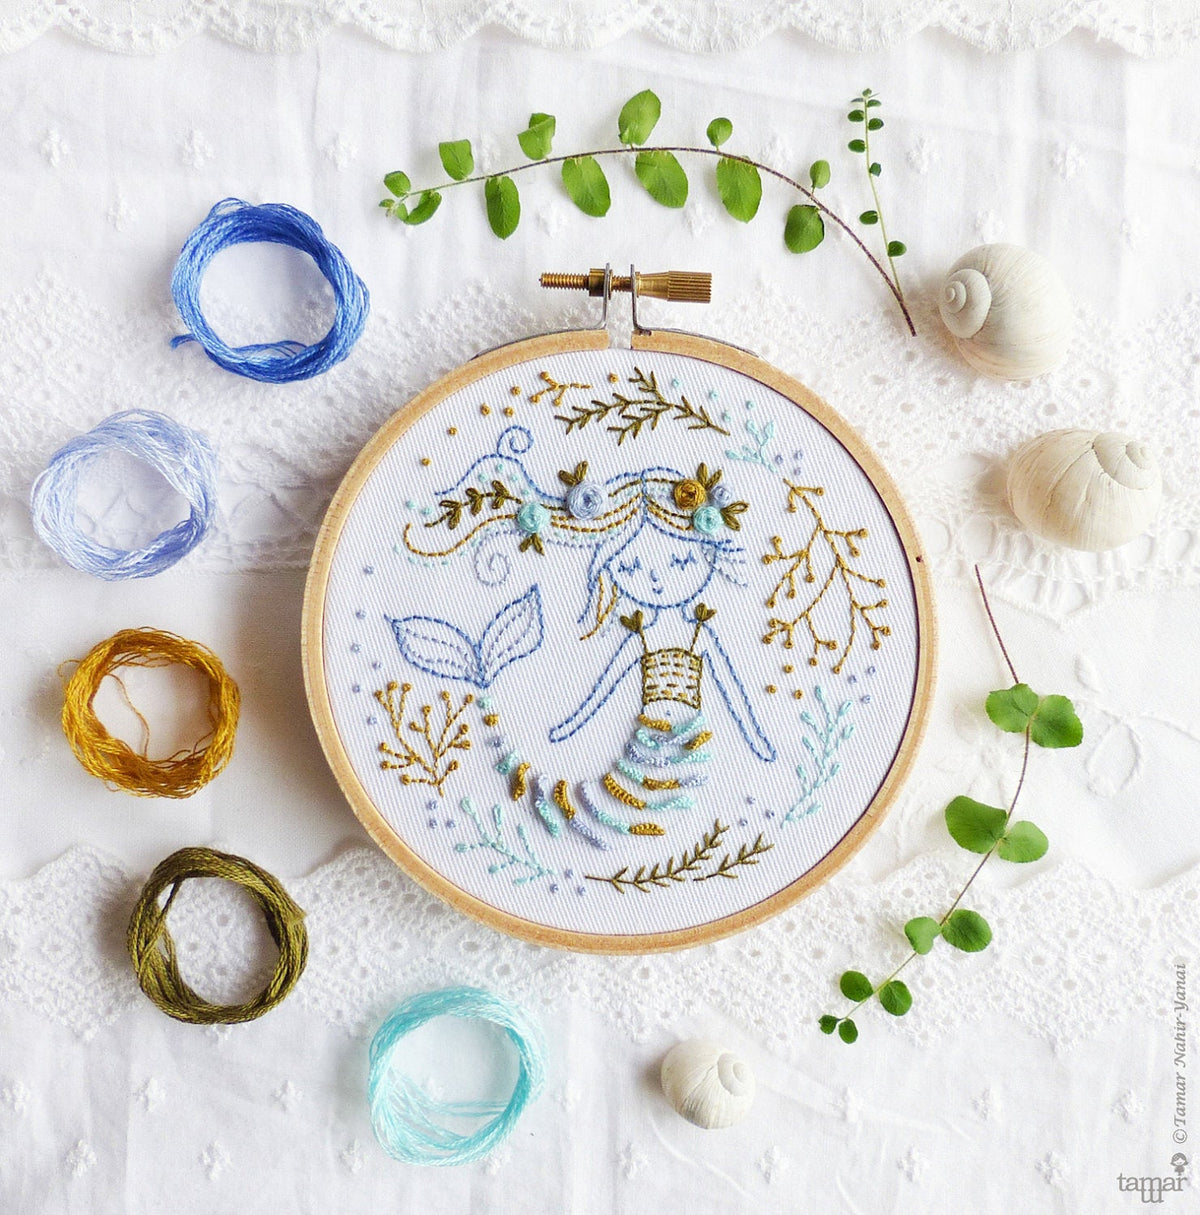 Mermaid Dreams Mini Hoop Hand Embroidery Kit